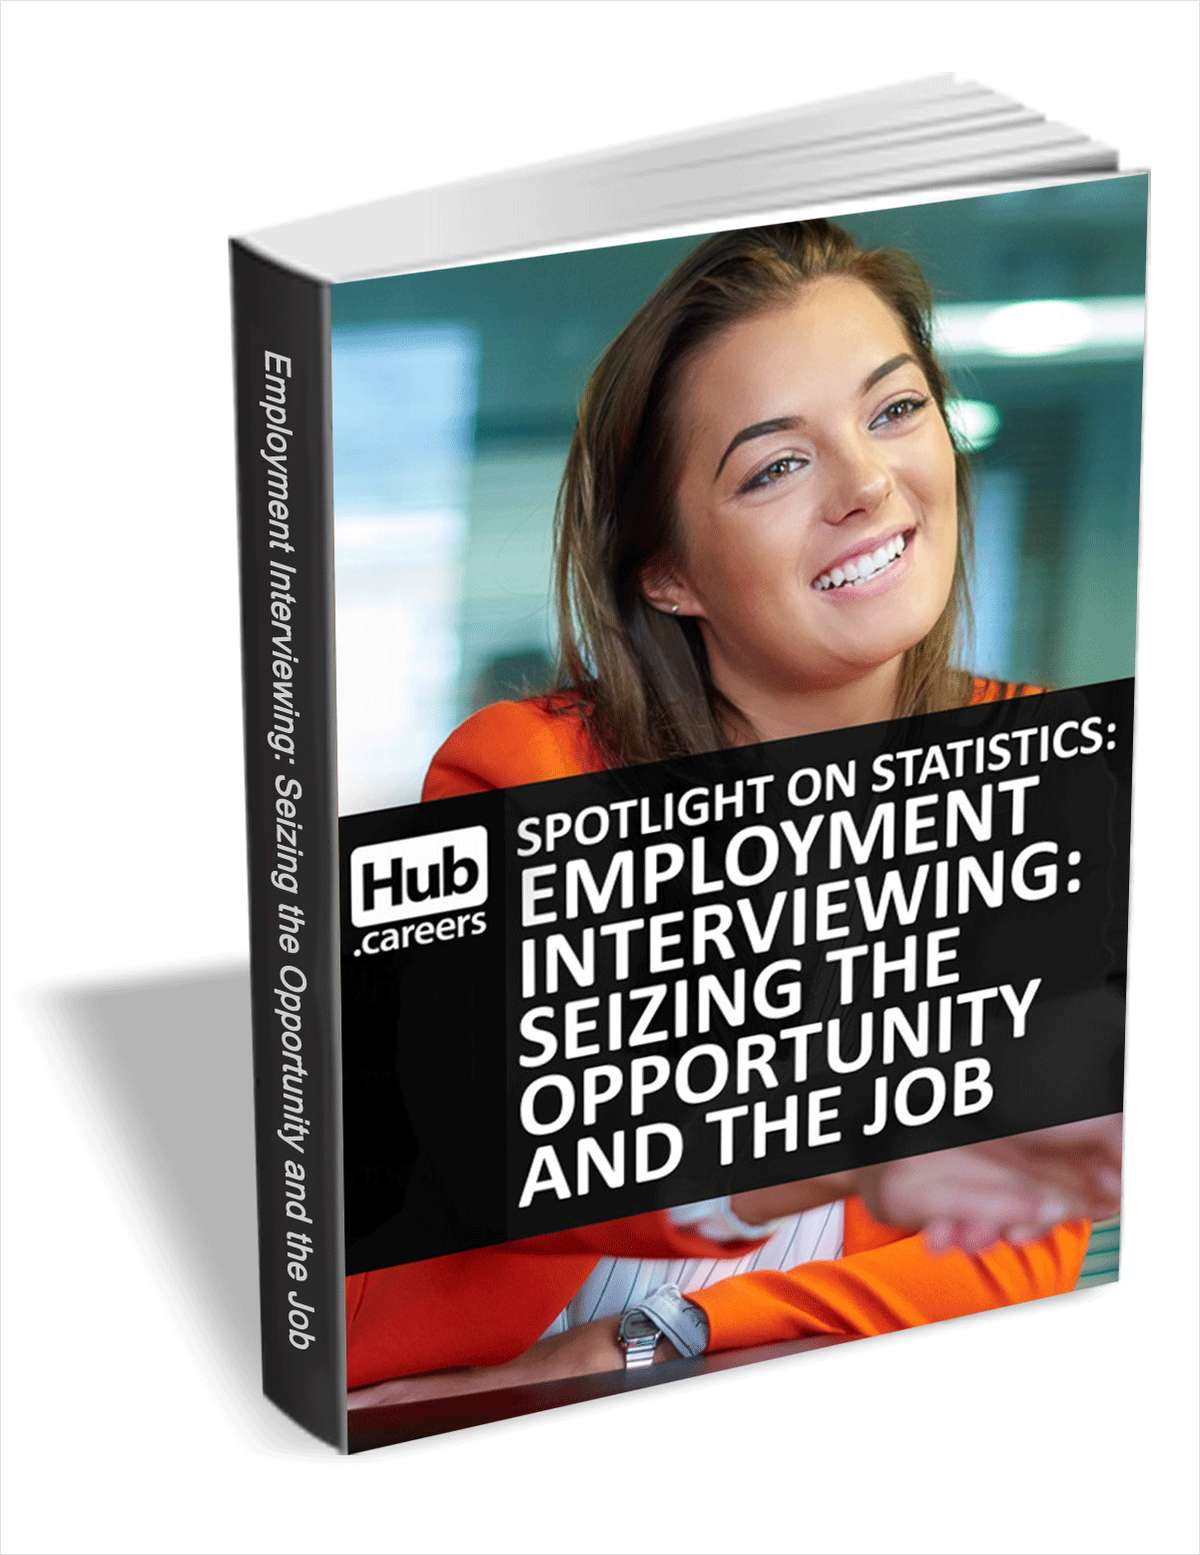 Employment Interviewing: Seizing the Opportunity and the Job